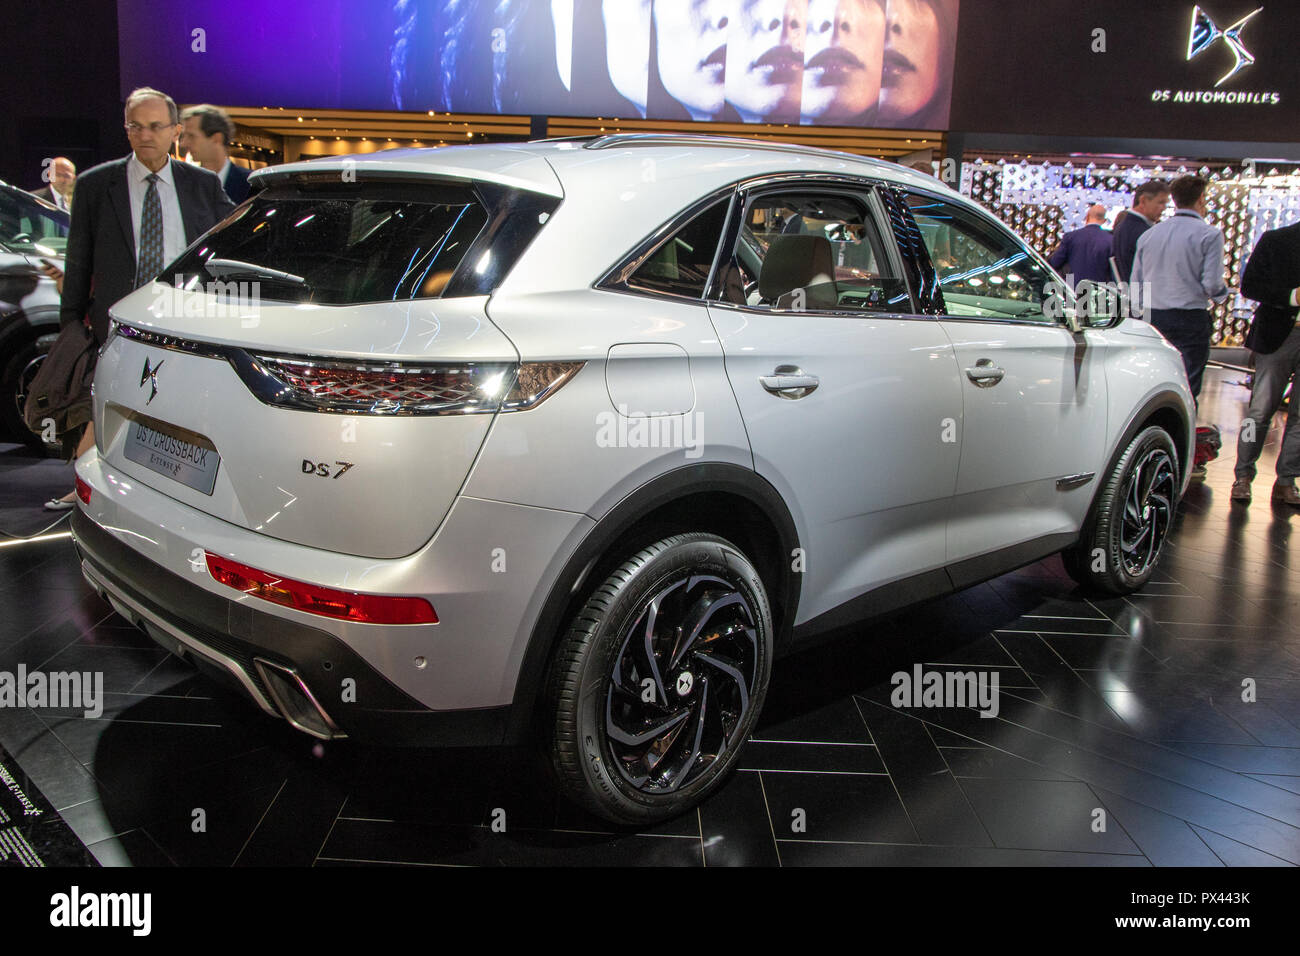 paris oct 2 2018 citroen ds7 crossback e tense car showcased at the paris motor show stock. Black Bedroom Furniture Sets. Home Design Ideas